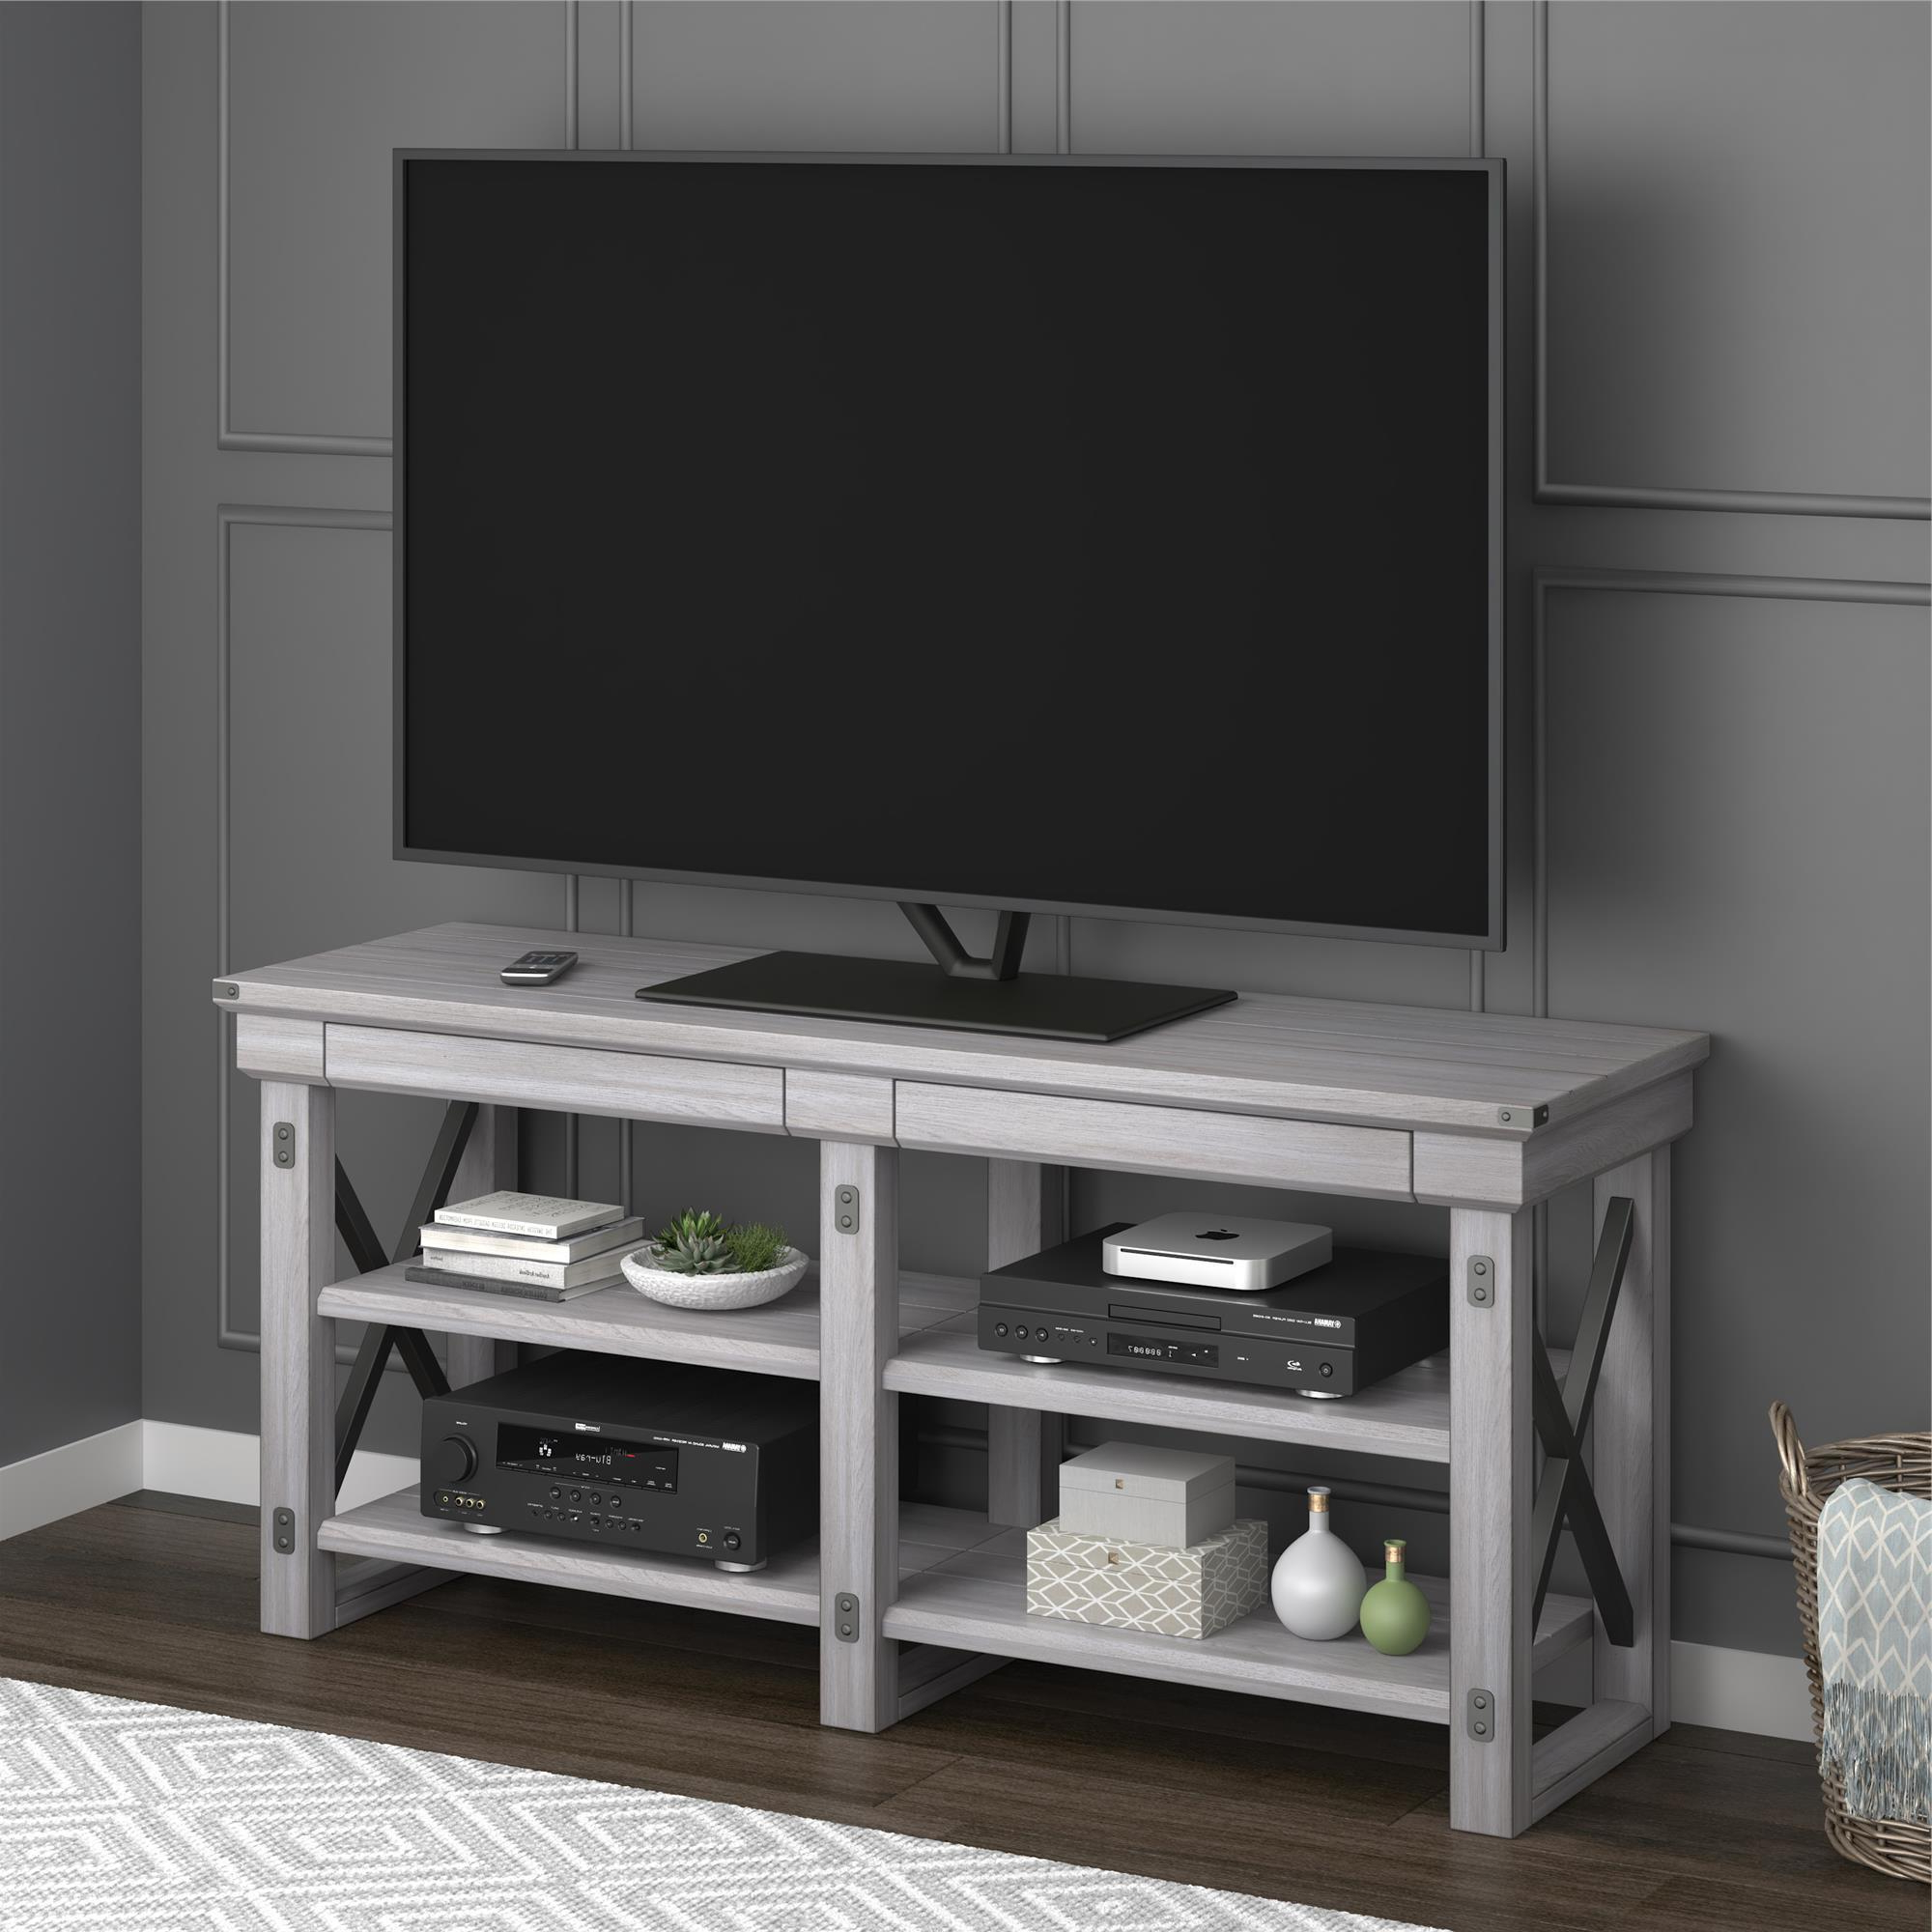 Rustic White Tv Stands In Most Current Shop Avenue Greene Woodgate Rustic White Tv Stand For Up To 65 Inch (View 14 of 20)